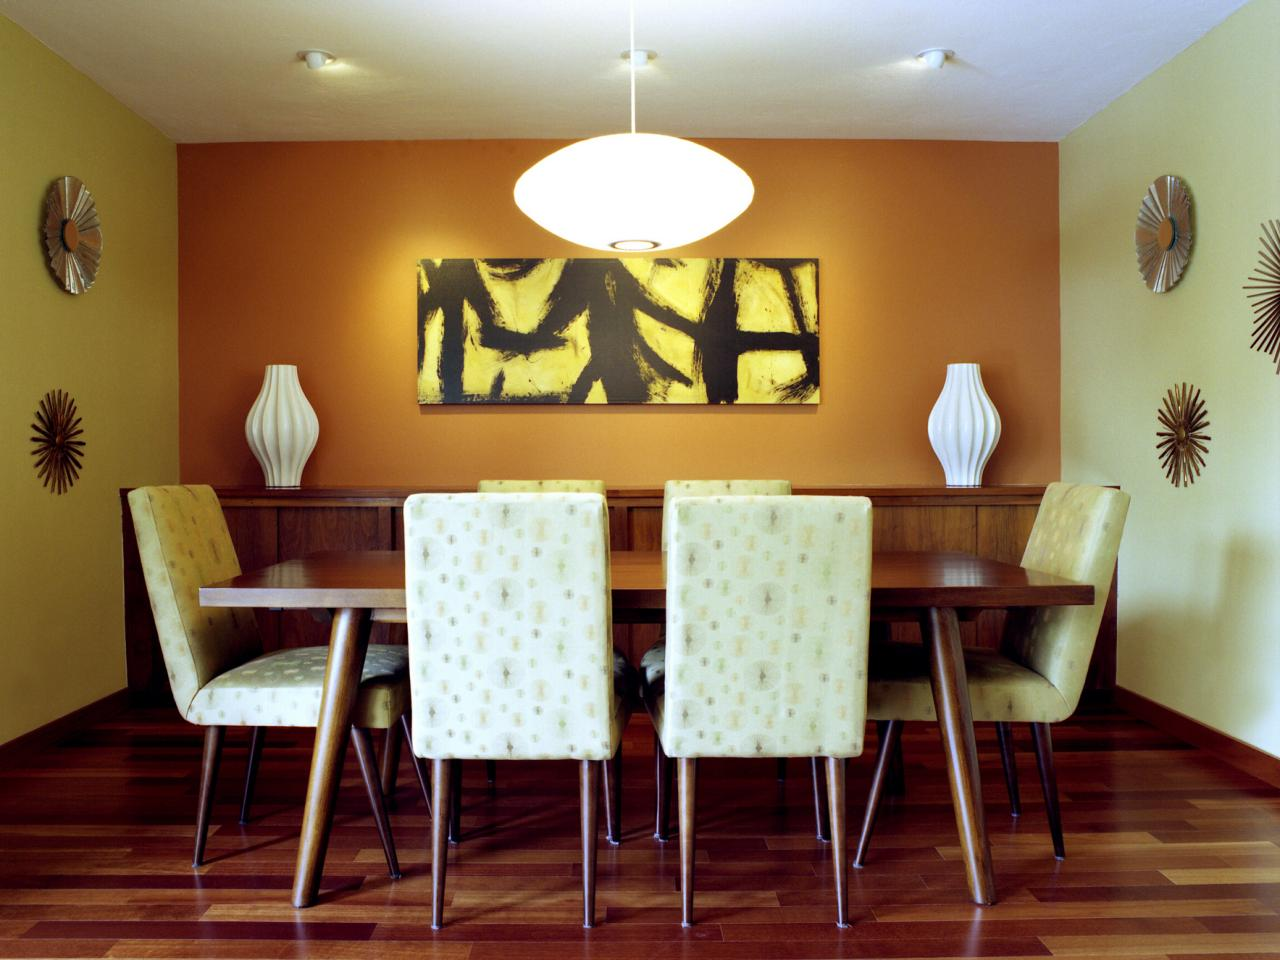 Add midcentury modern style to your home interior design for Vintage style dining room ideas